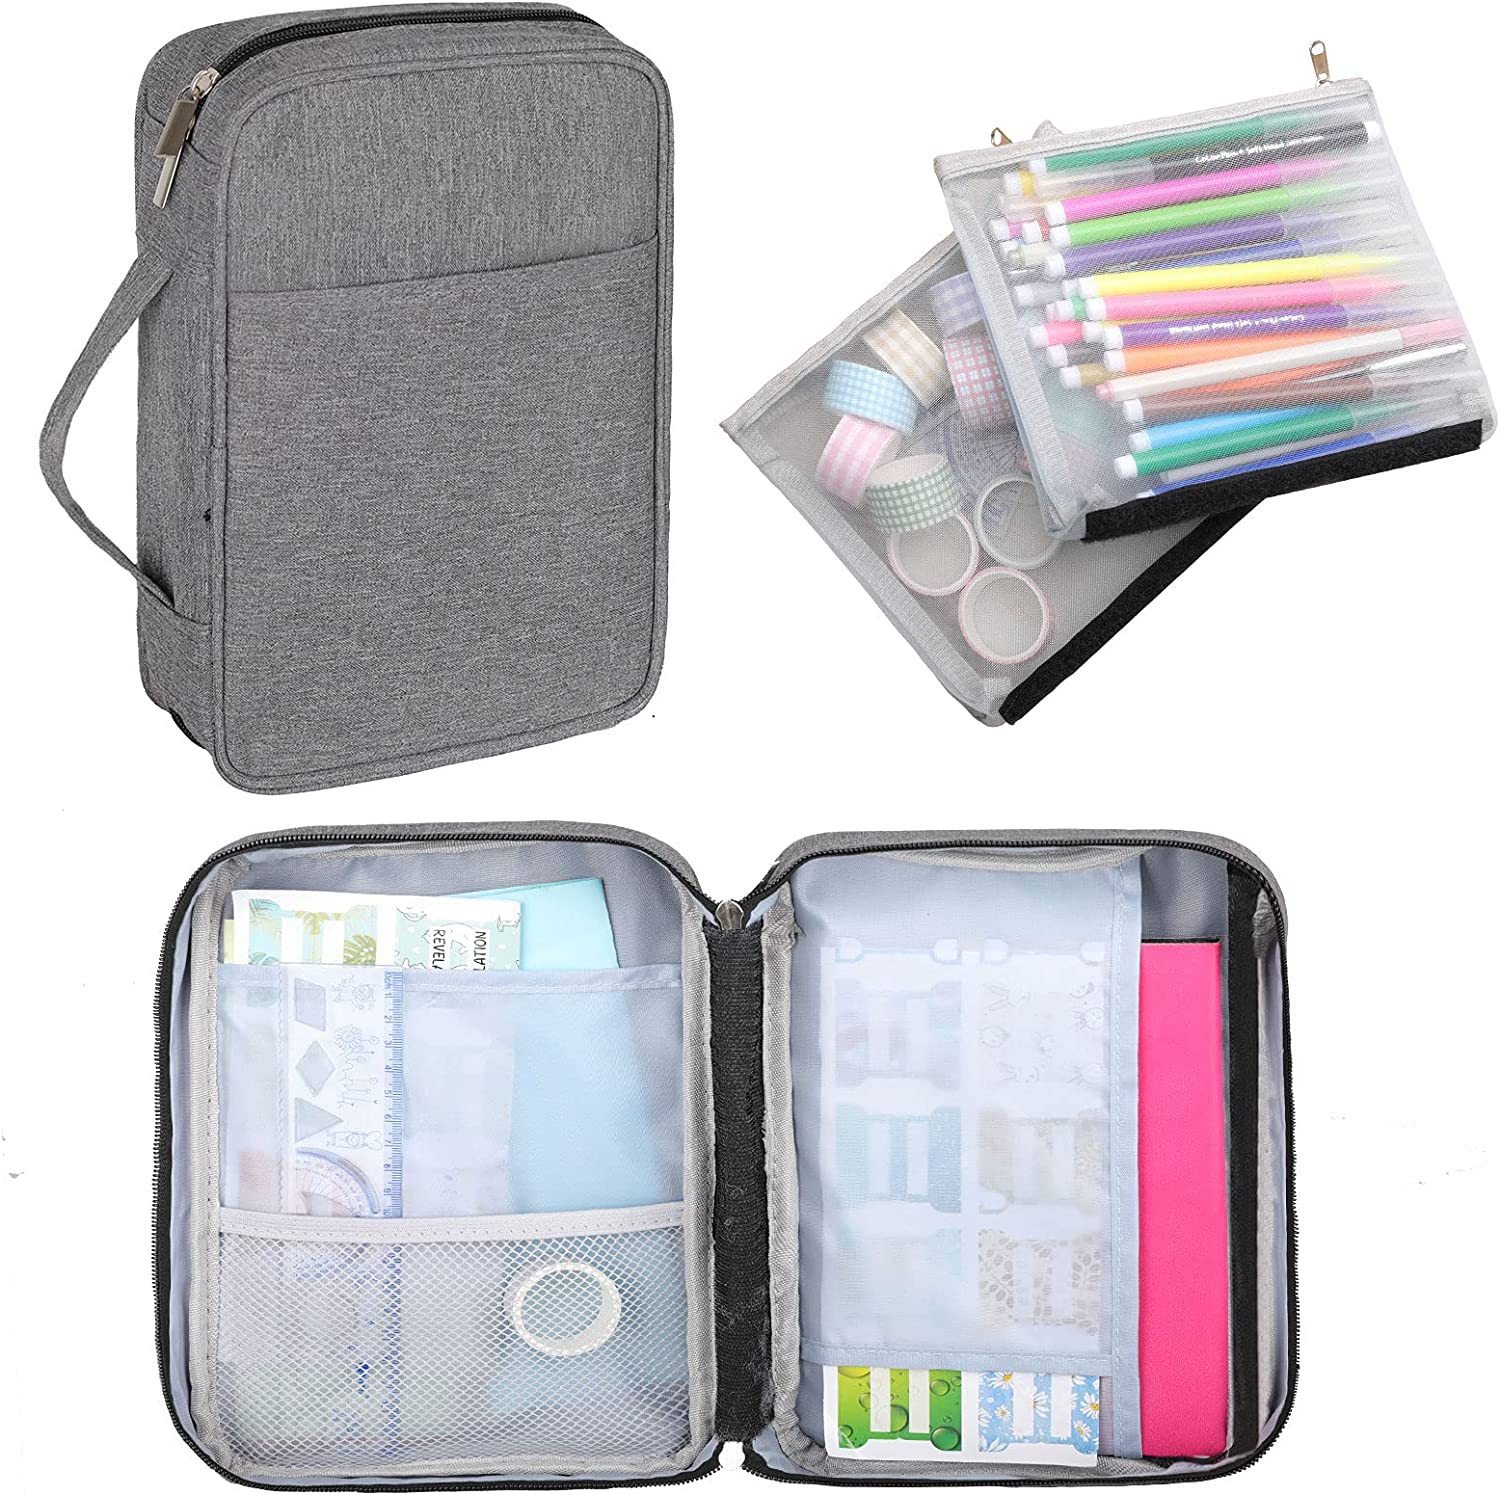 Dofilachy Journal Supplies Storage Case with 2 Detachable Layers-Upgrade Travel Organizer for A5 Planner,Pens,Bullet Journal Supplies and Accessories (Gray, Medium)